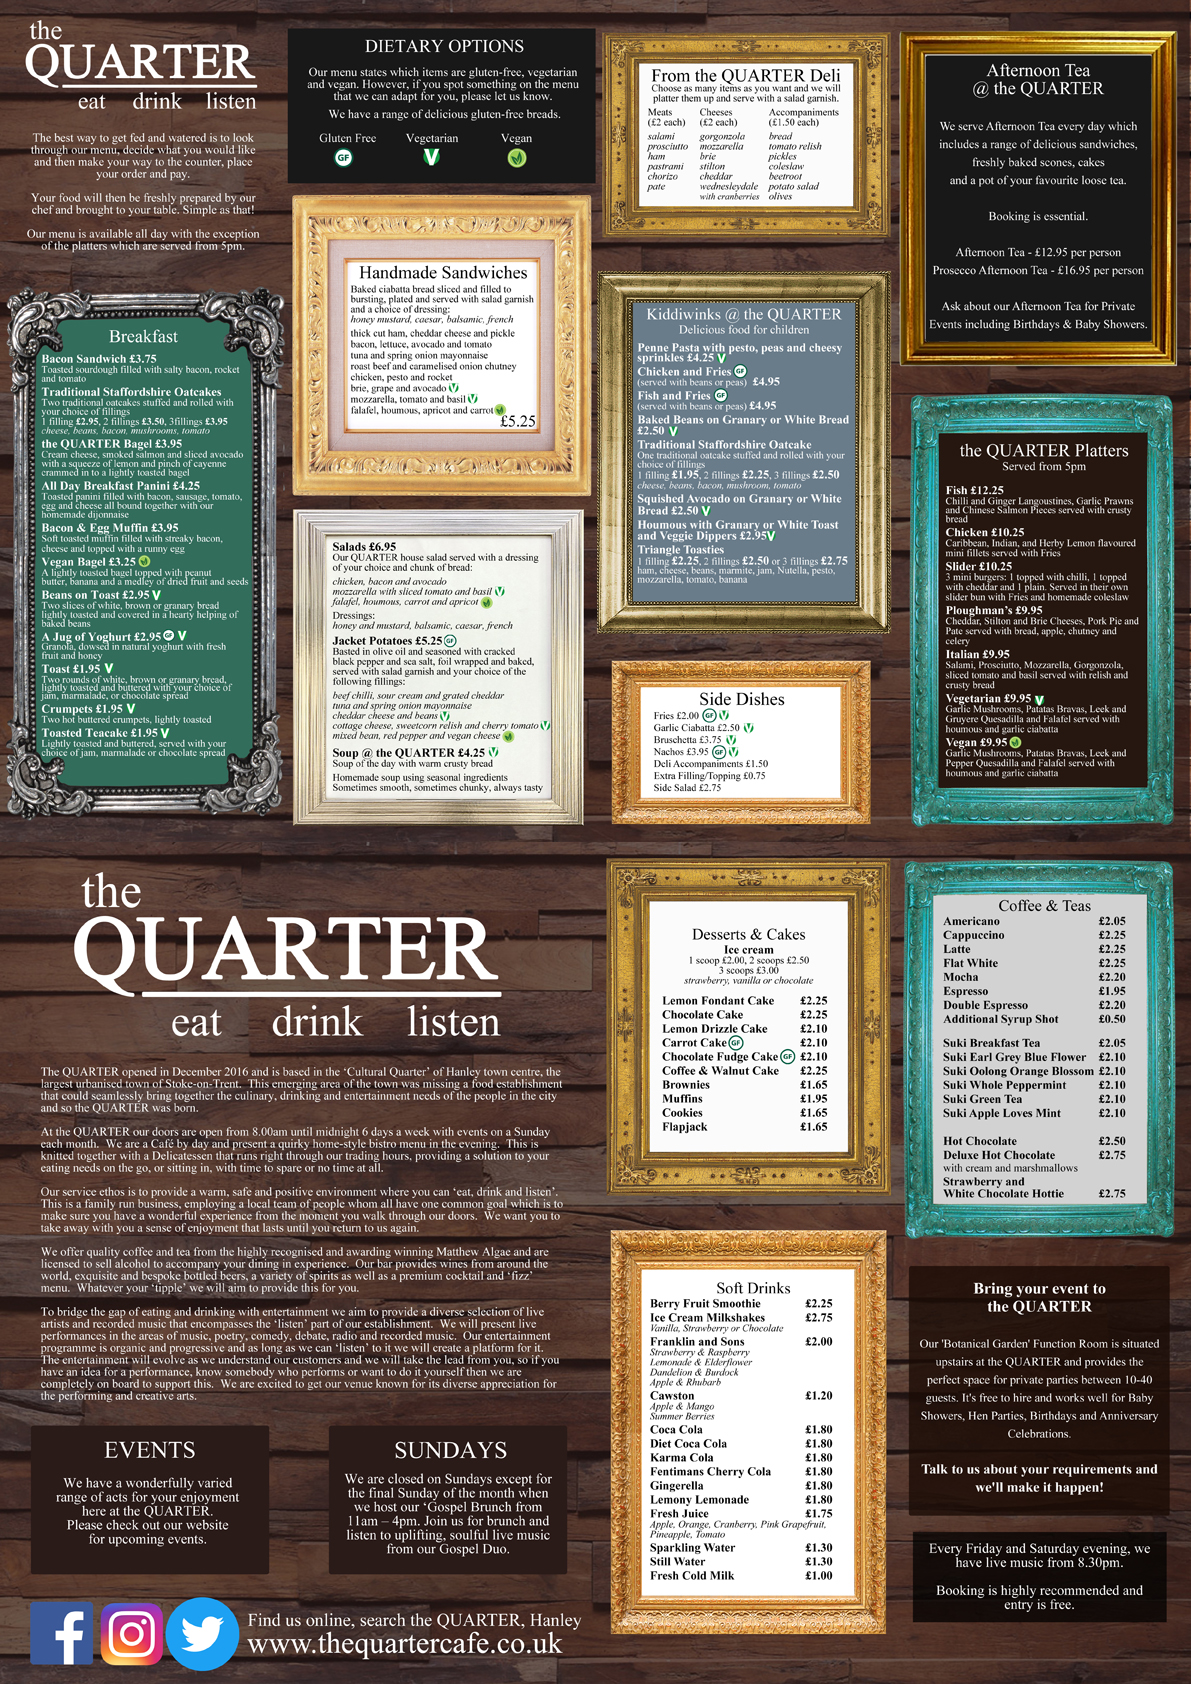 The Quarter Cafe, Stoke-on-Trent - Web Menu - May 2017